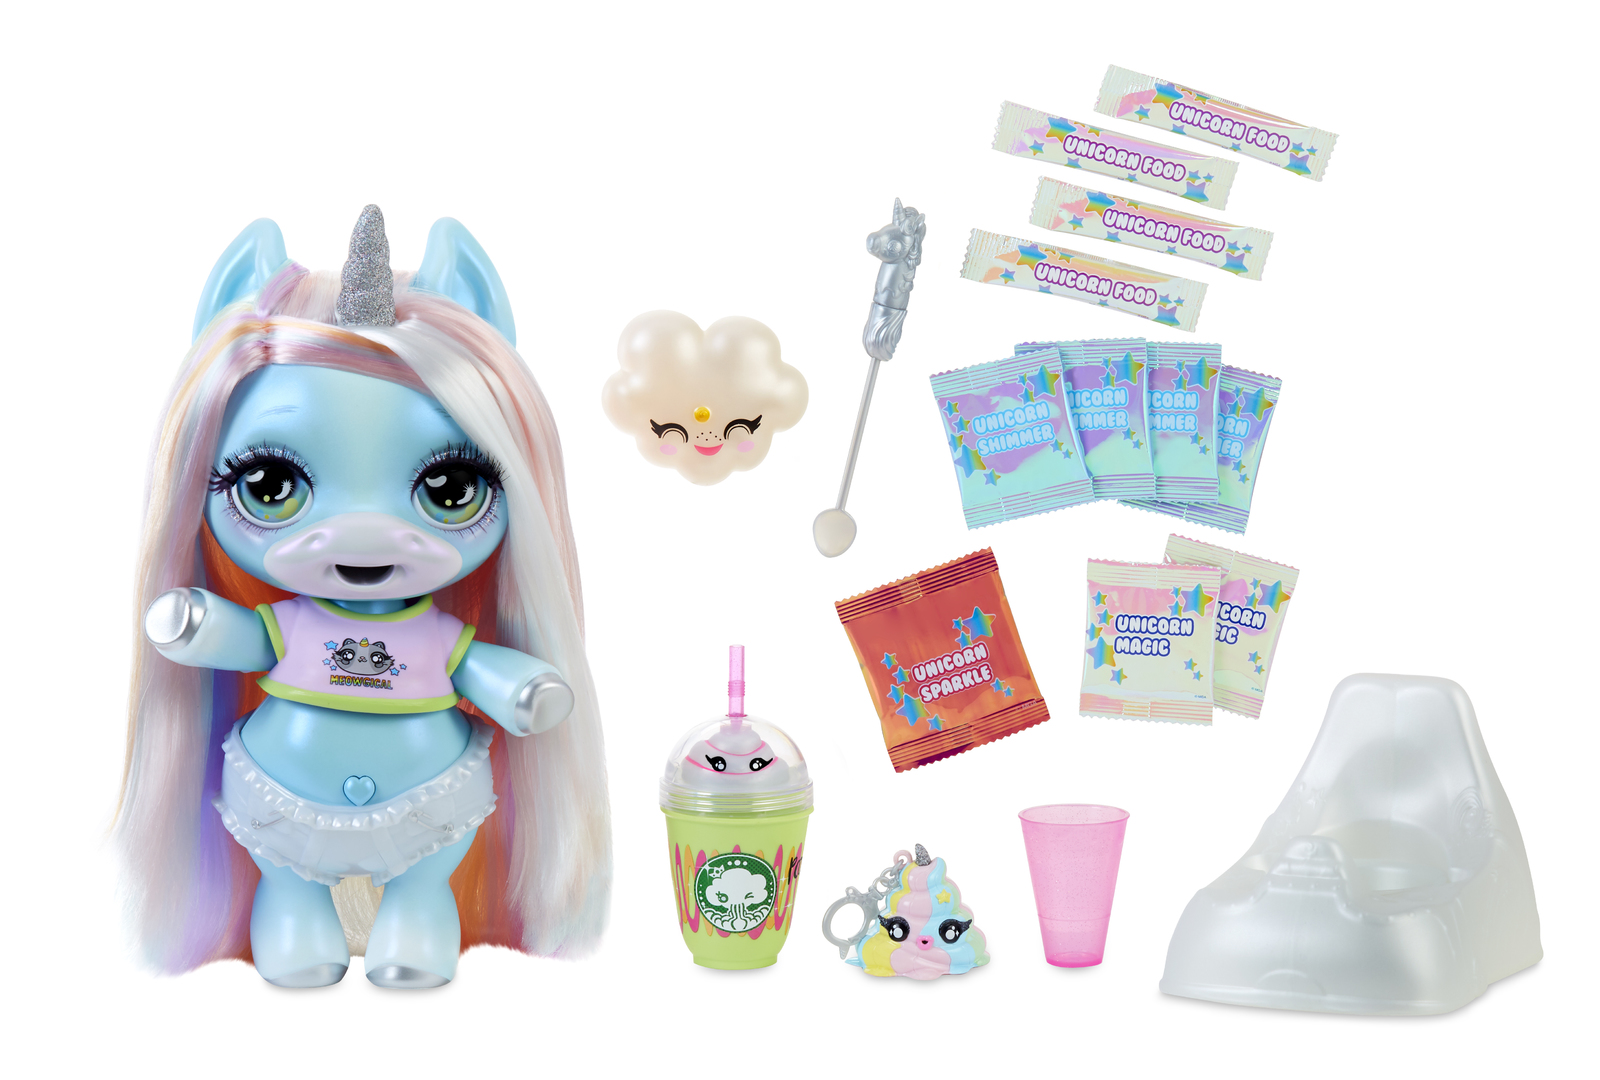 Poopsie: Surprise Unicorn S2 - Collectable Doll (Blind Box) image